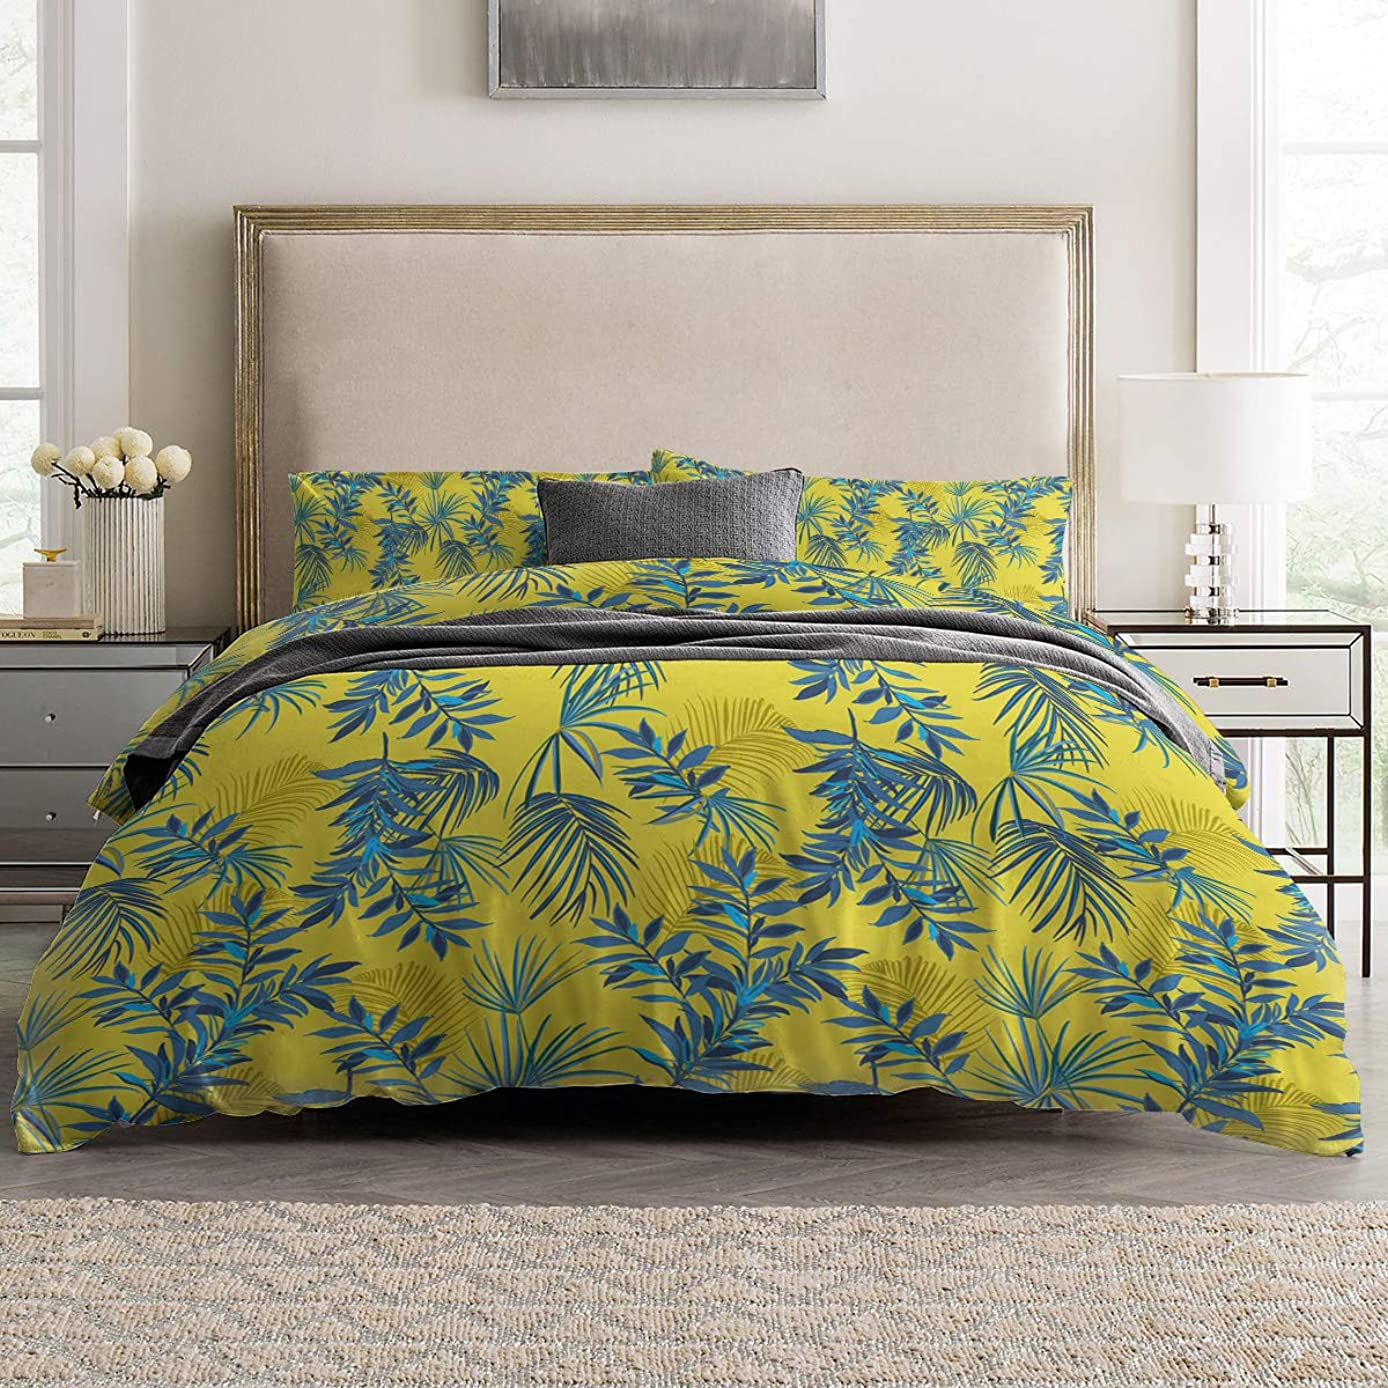 Duvet Cover Sets - Tropical Plant Leaves with Yellow Background 4 Piece Queen Bedding Sets Soft Microfiber Bedspread Comforter Cover and Pillow Shams for Adult/Children/Teens